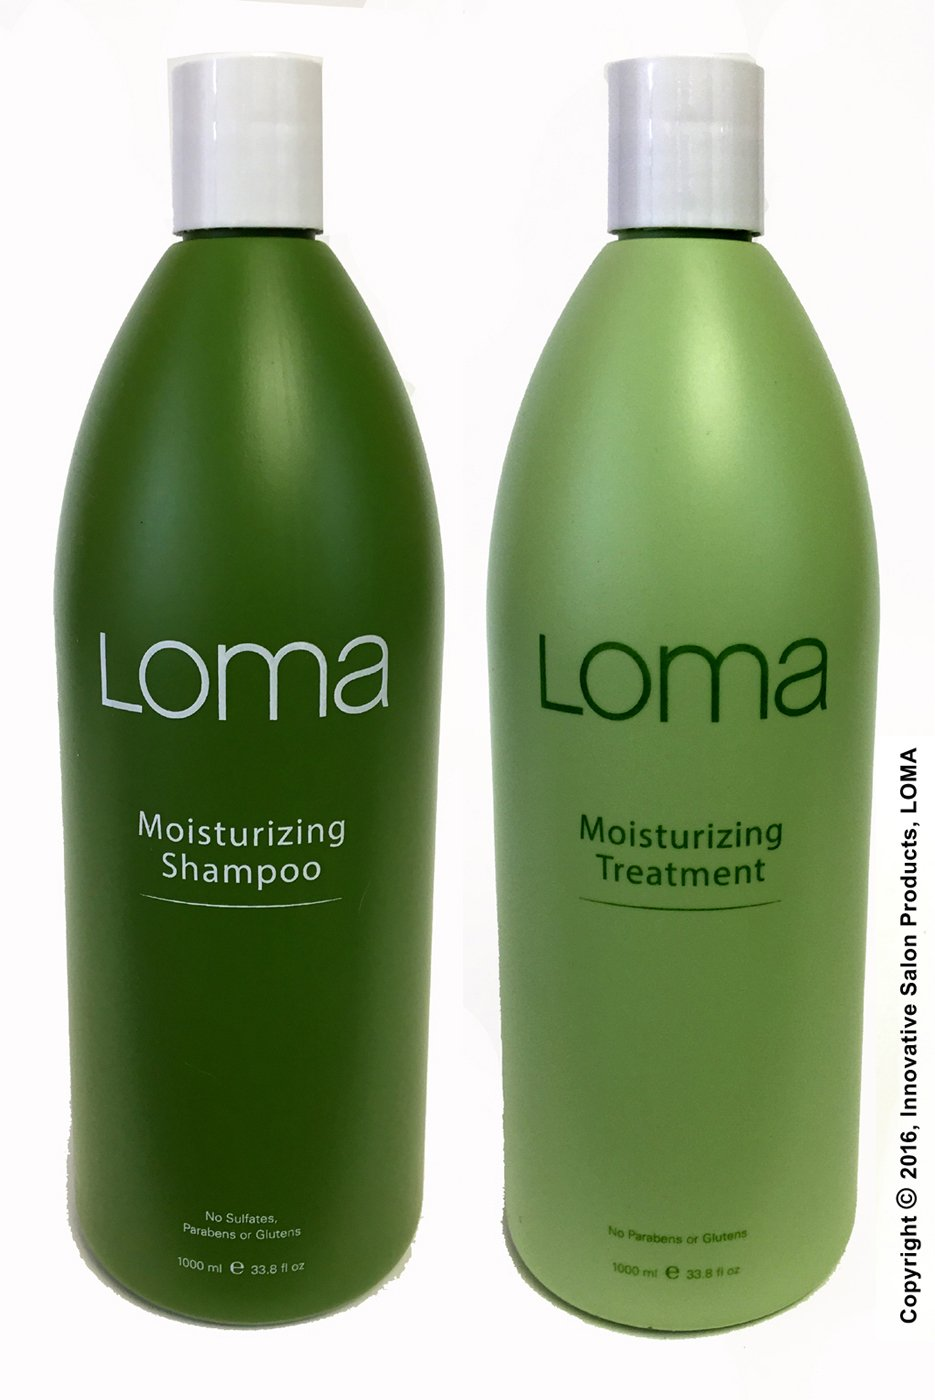 Loma Hair Care Moisturizing Shampoo and Moisturizing DUO PACK by Loma